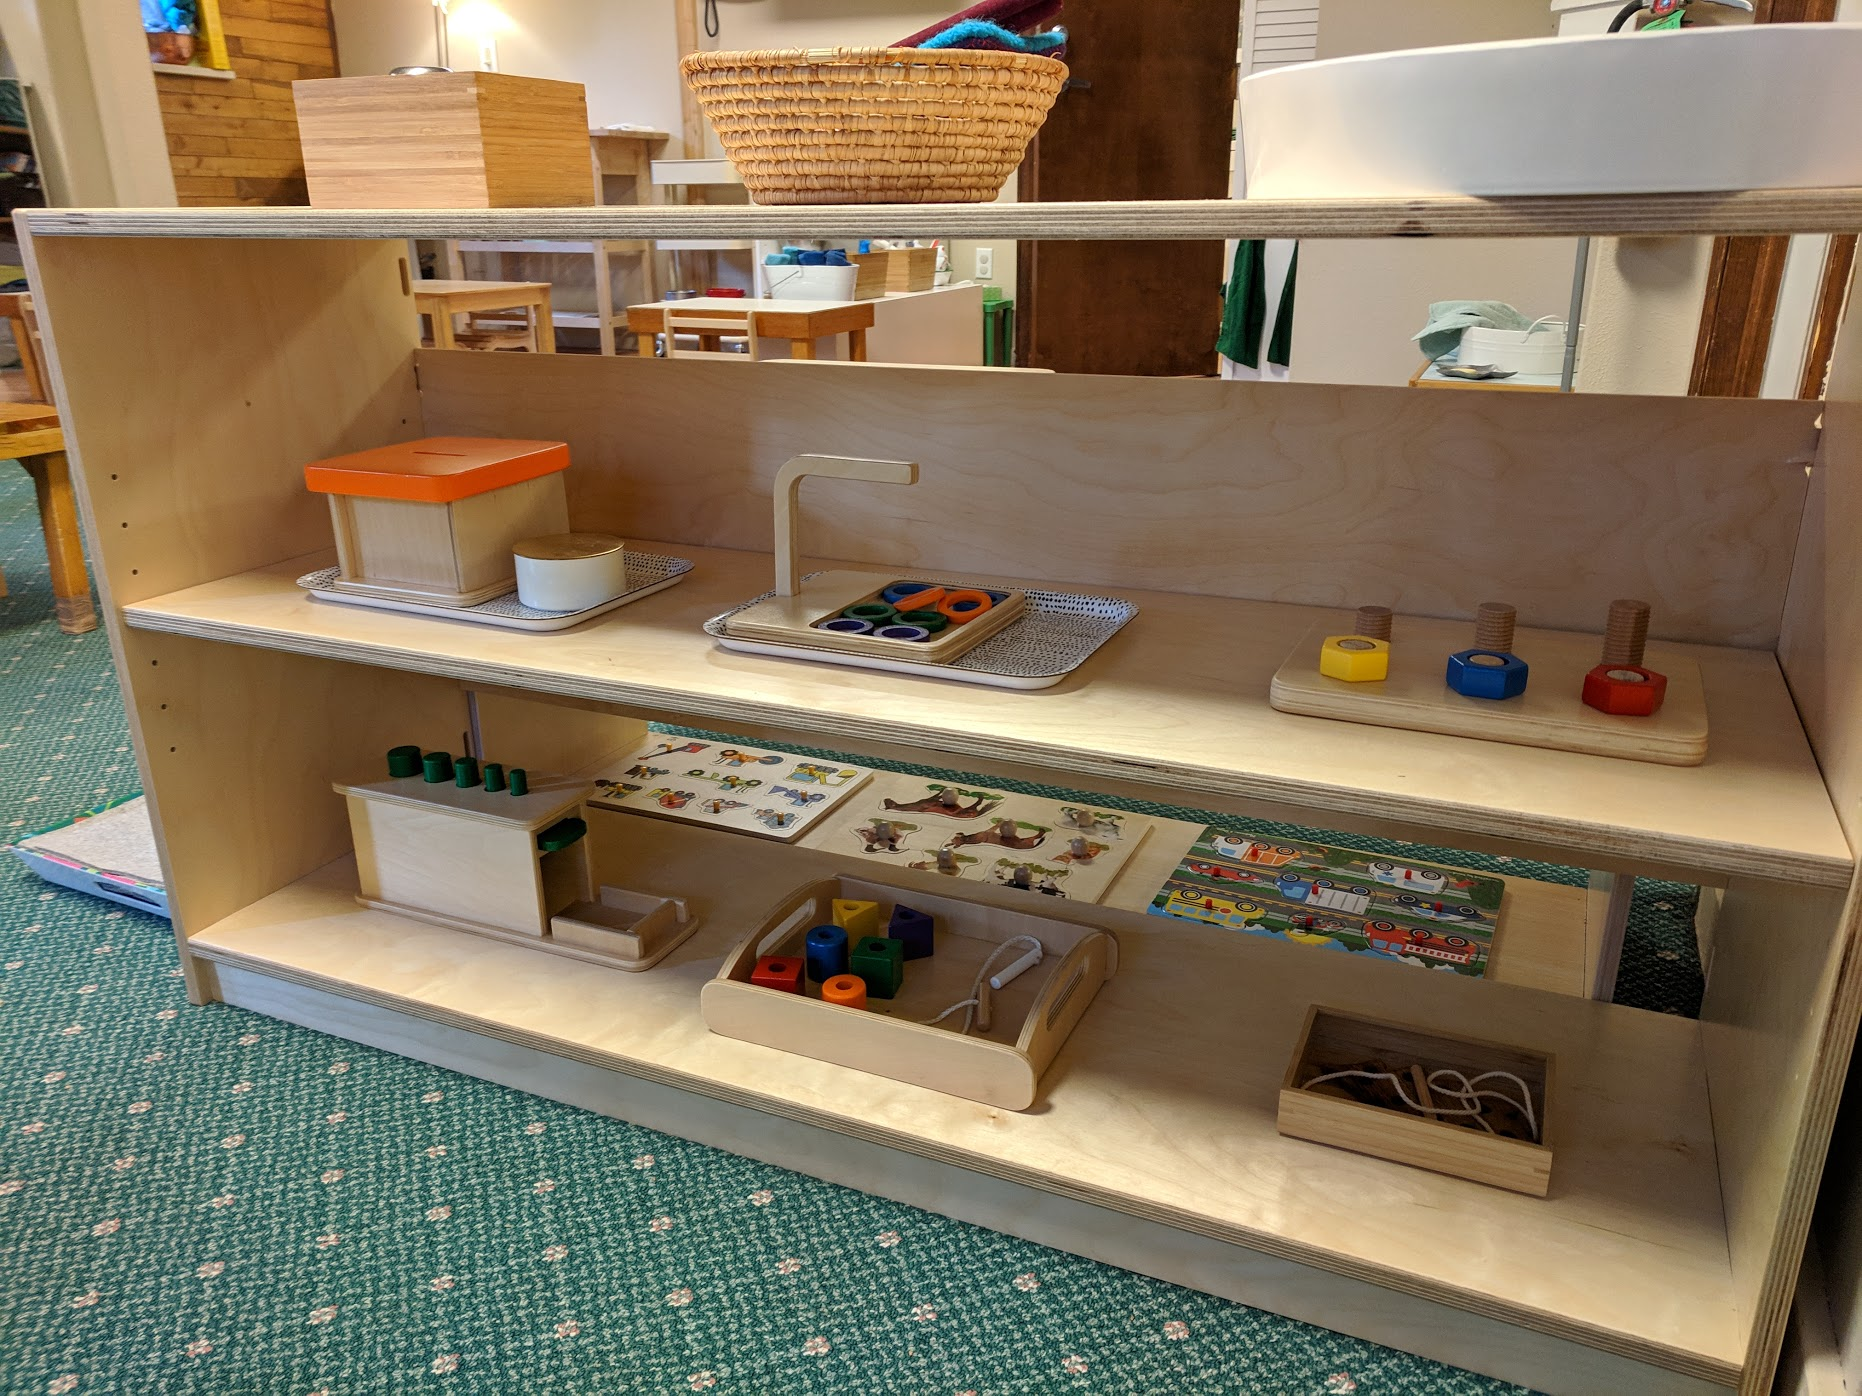 Manipulatives Shelf The Montessori School of Evergreen 2019